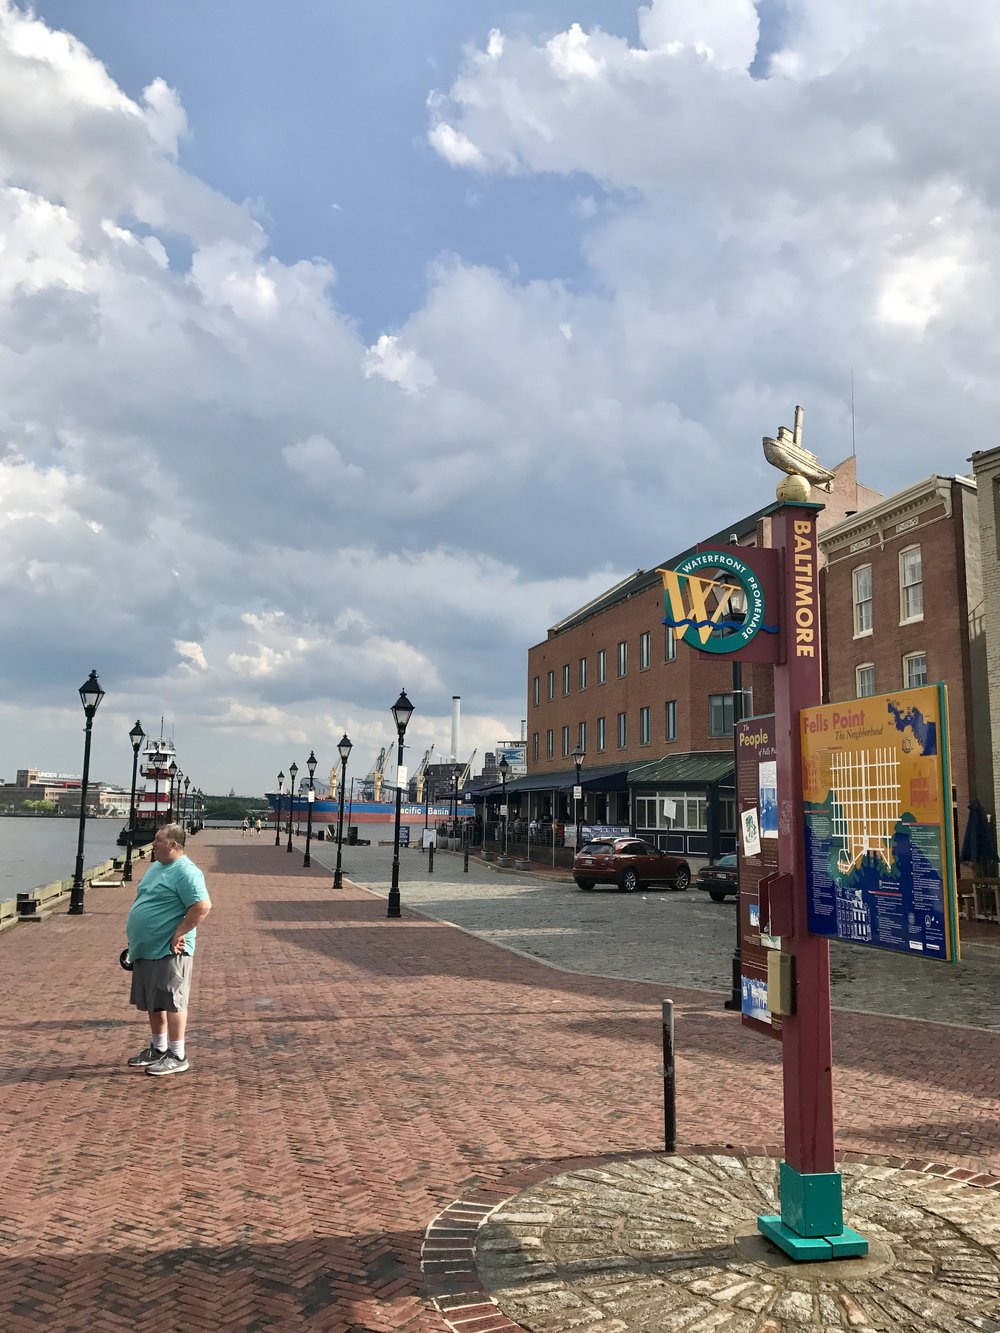 Sudden thunder, lightening, rain, and sun - fabulous weather! At Fells Point, Baltimore, MD.